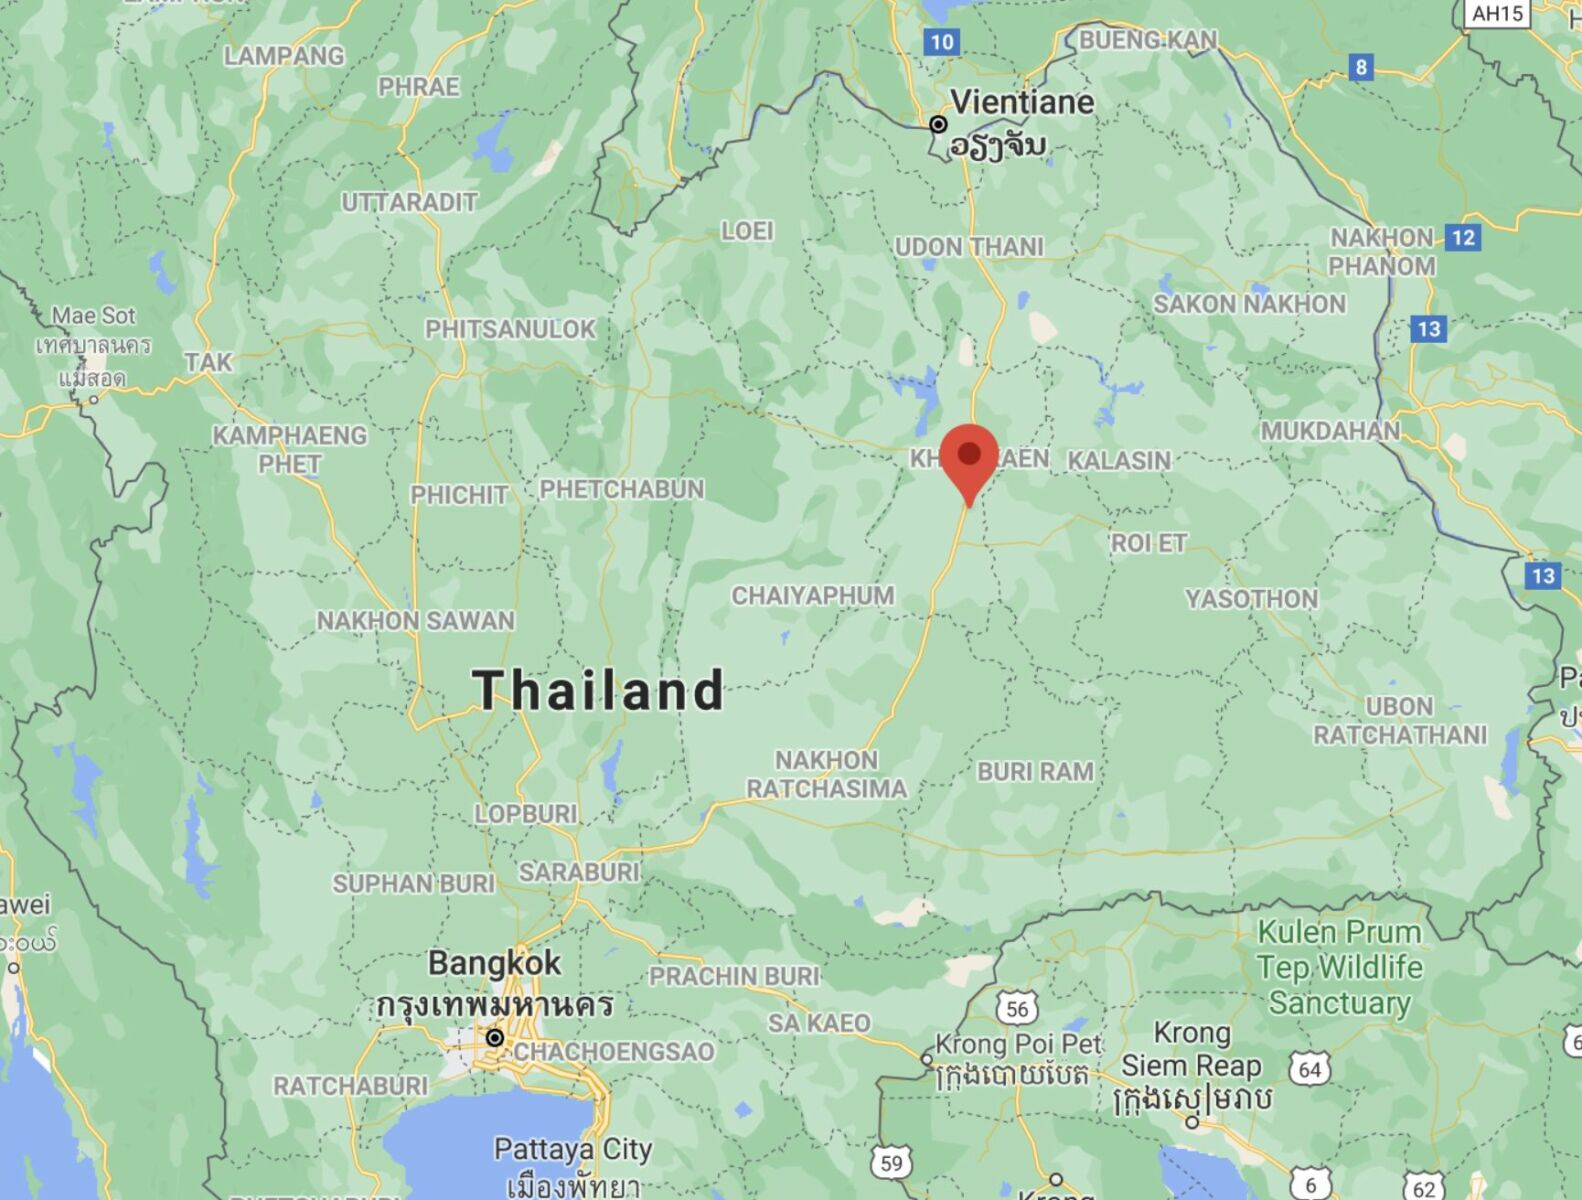 5 killed, including 2 children, in north east Thailand bus disaster | Thaiger